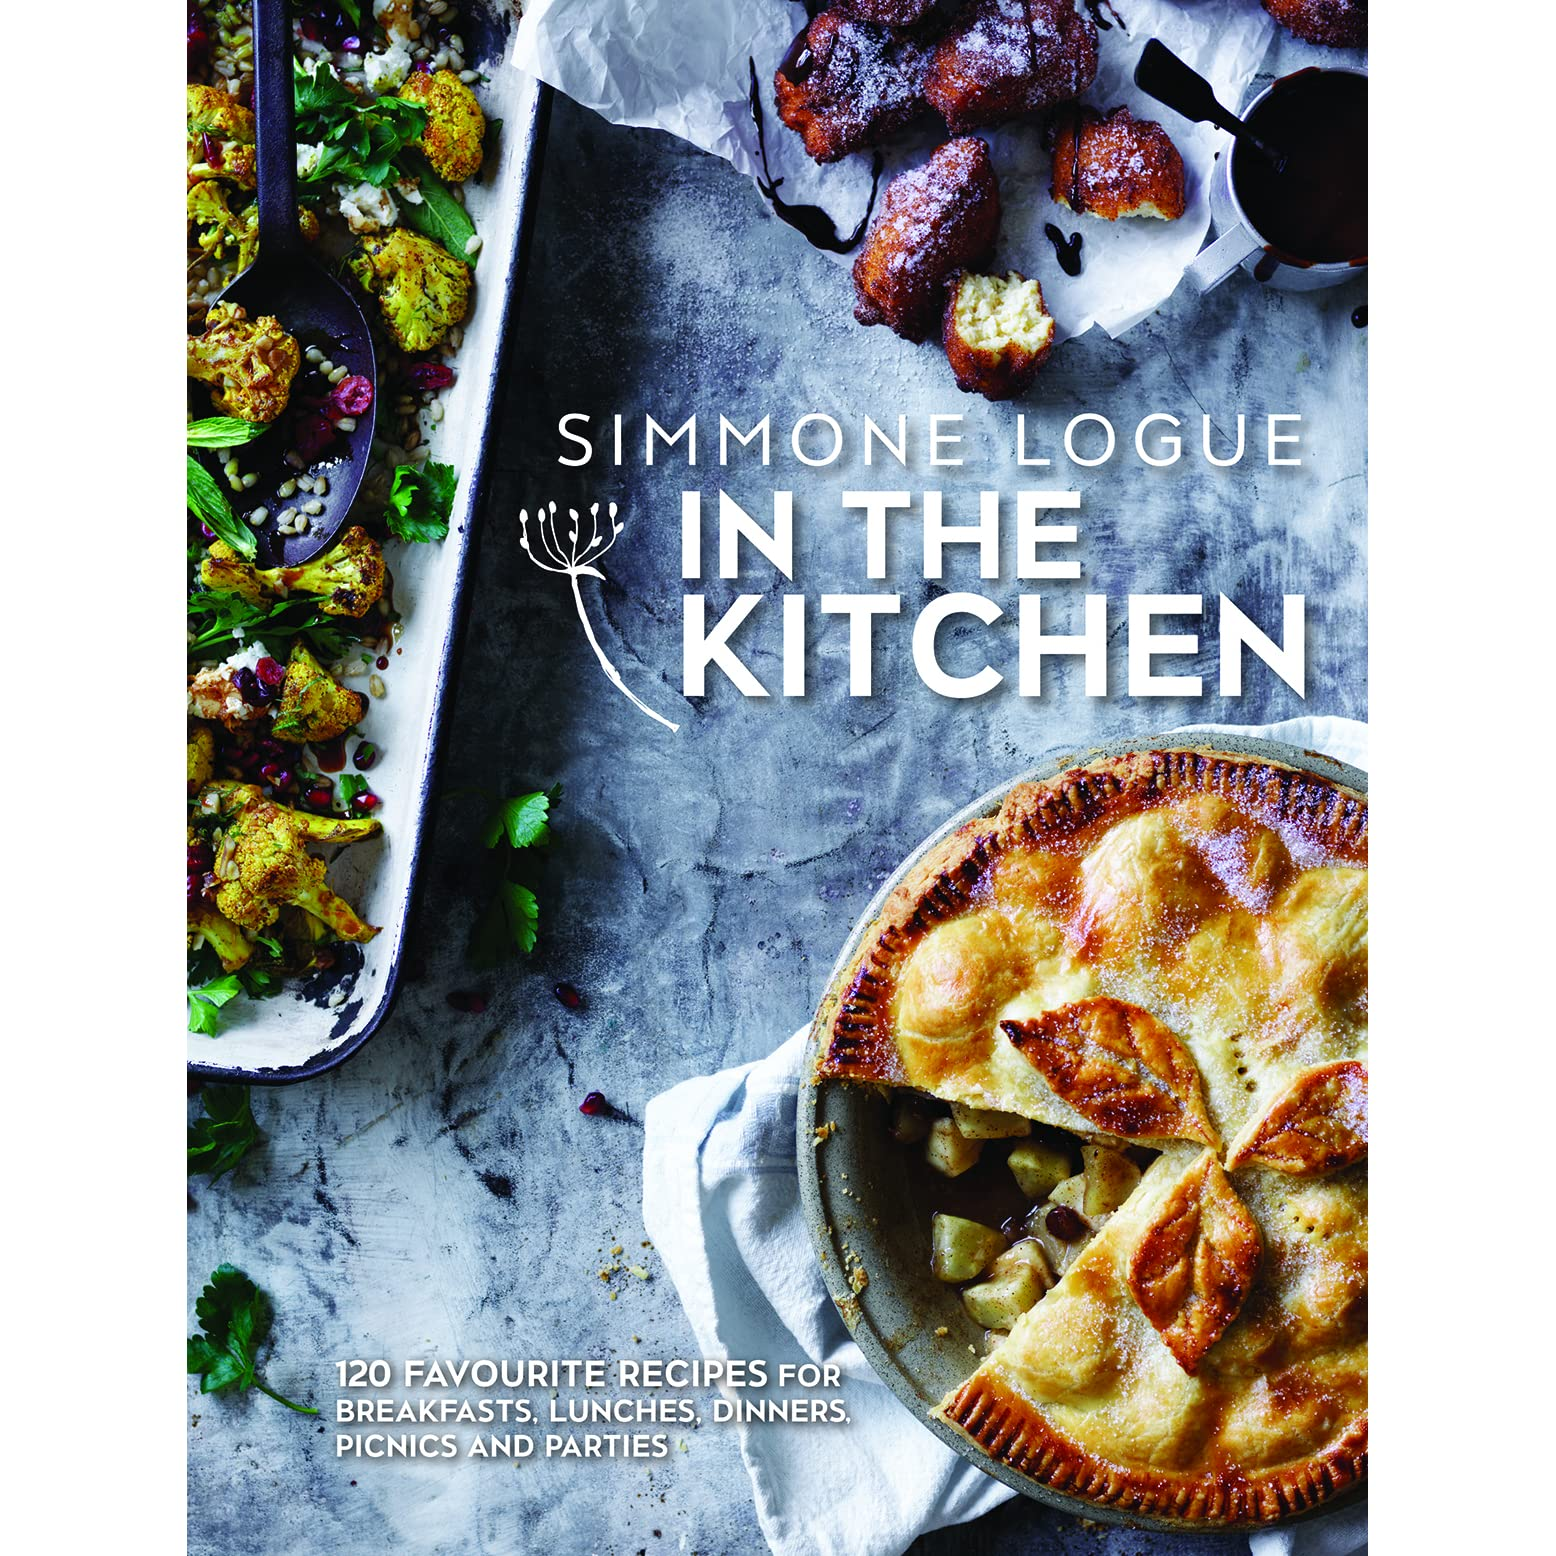 In the Kitchen by Simmone Logue